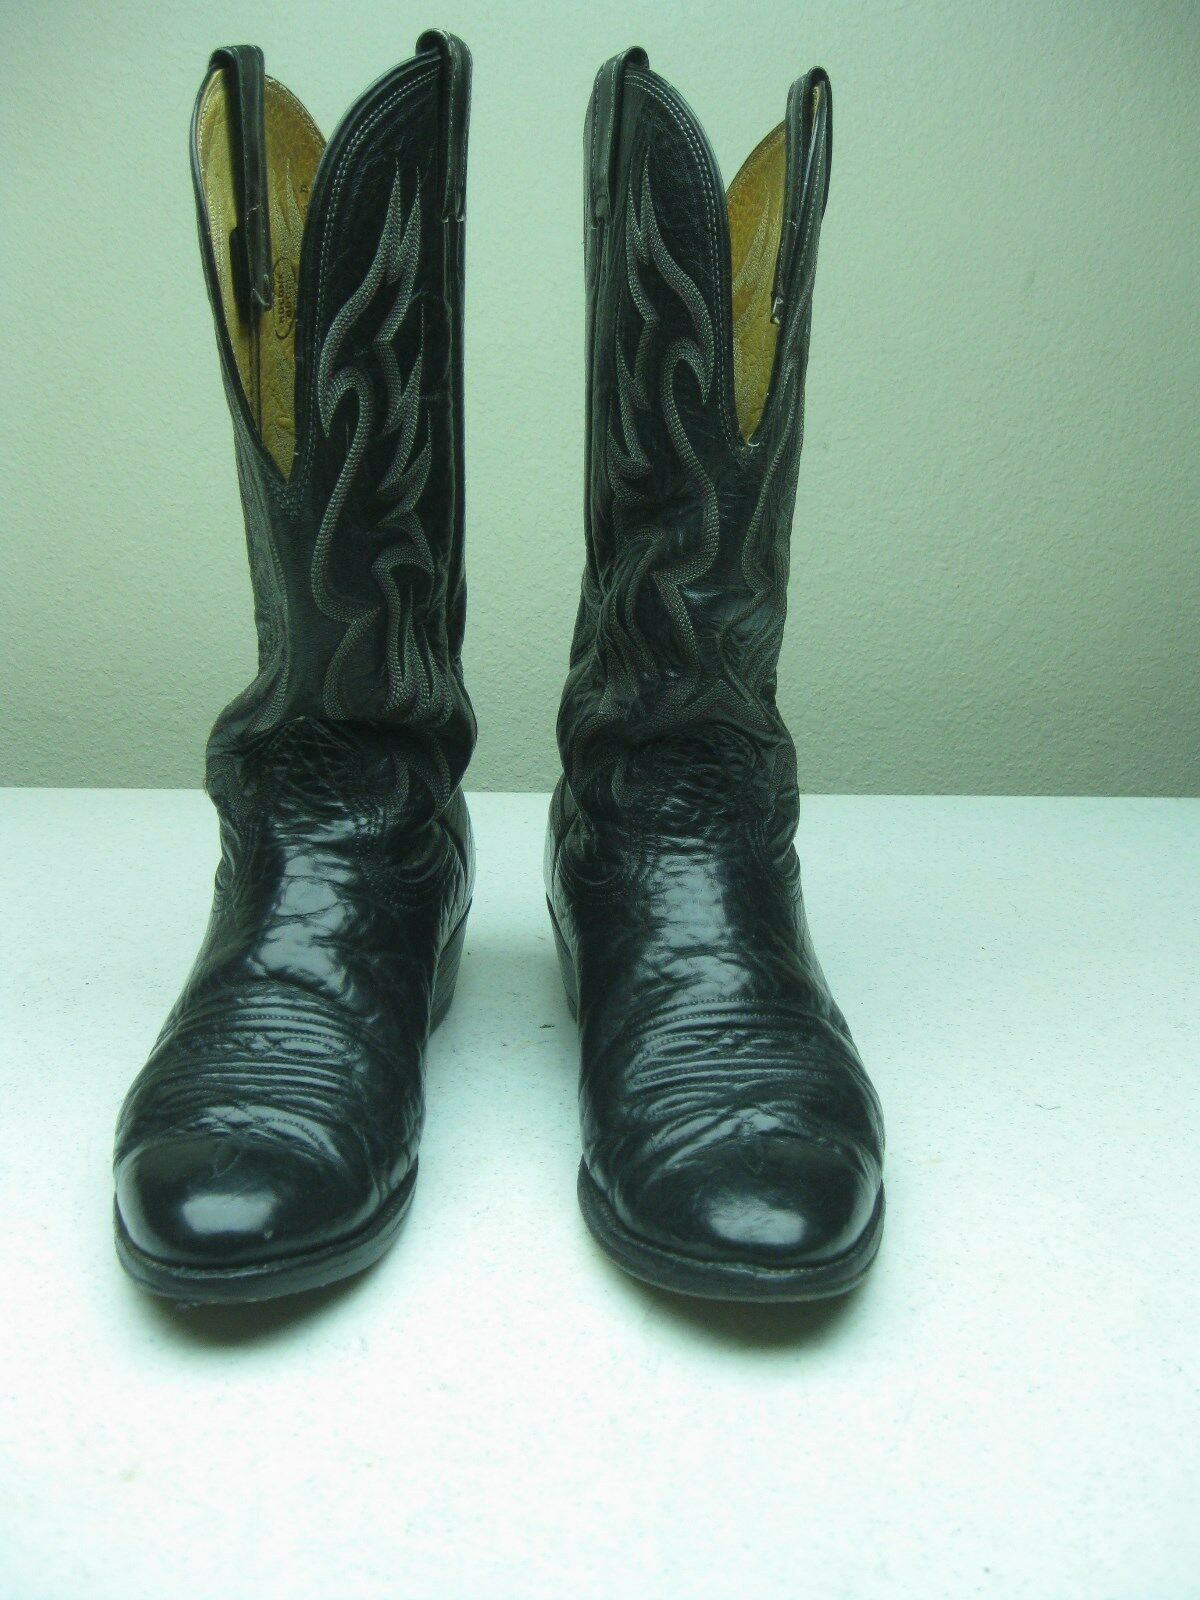 MADE IN USA DISTRESSED NOCONA schwarz LEATHER COWBOY Stiefel Größe 8.5 D